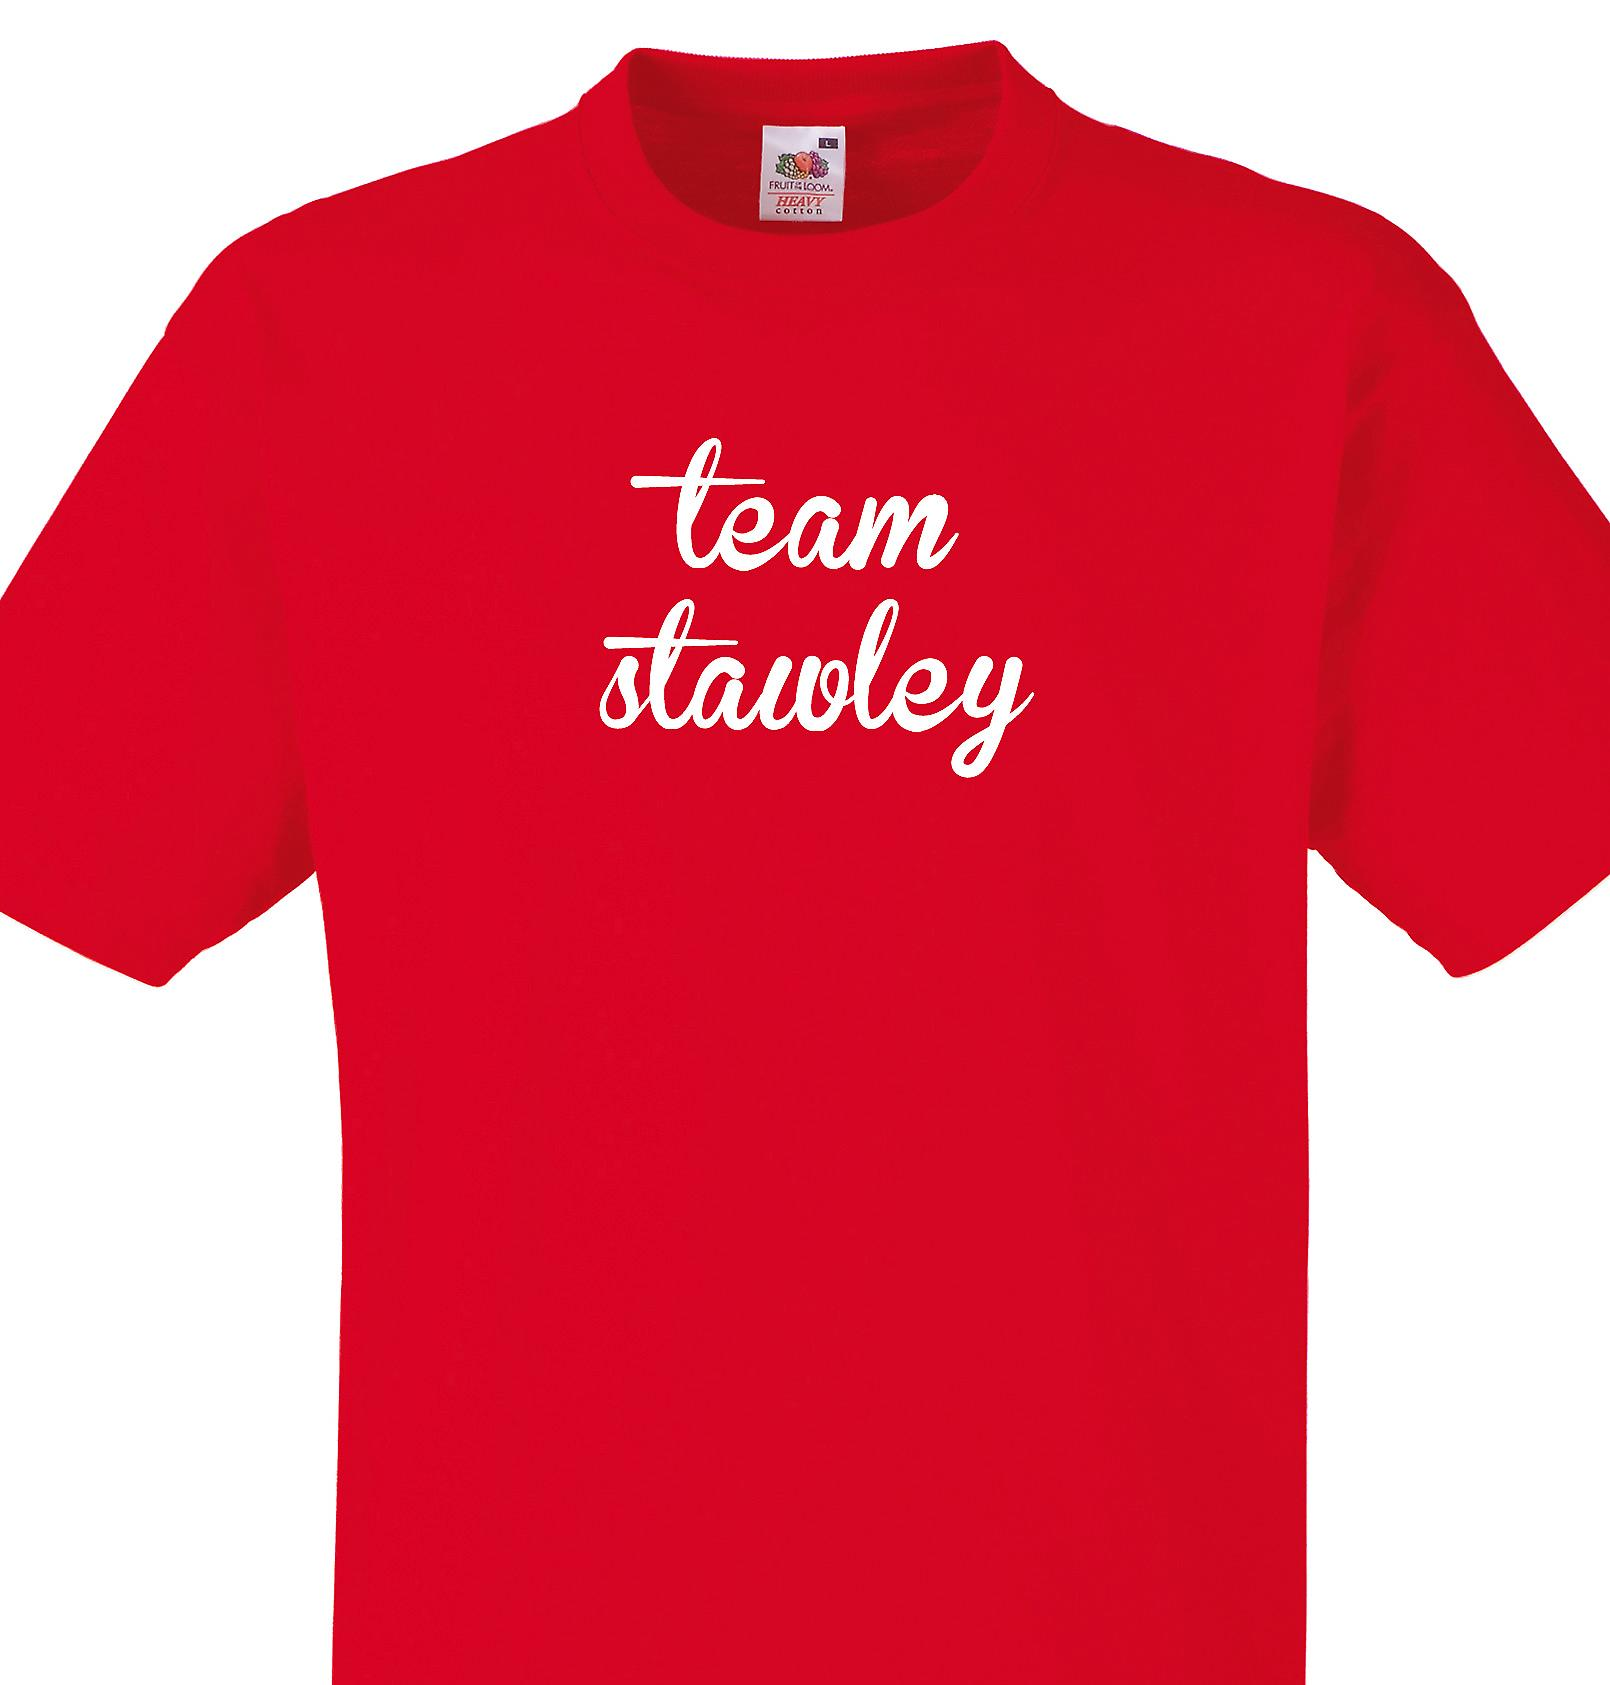 Team Stawley Red T shirt